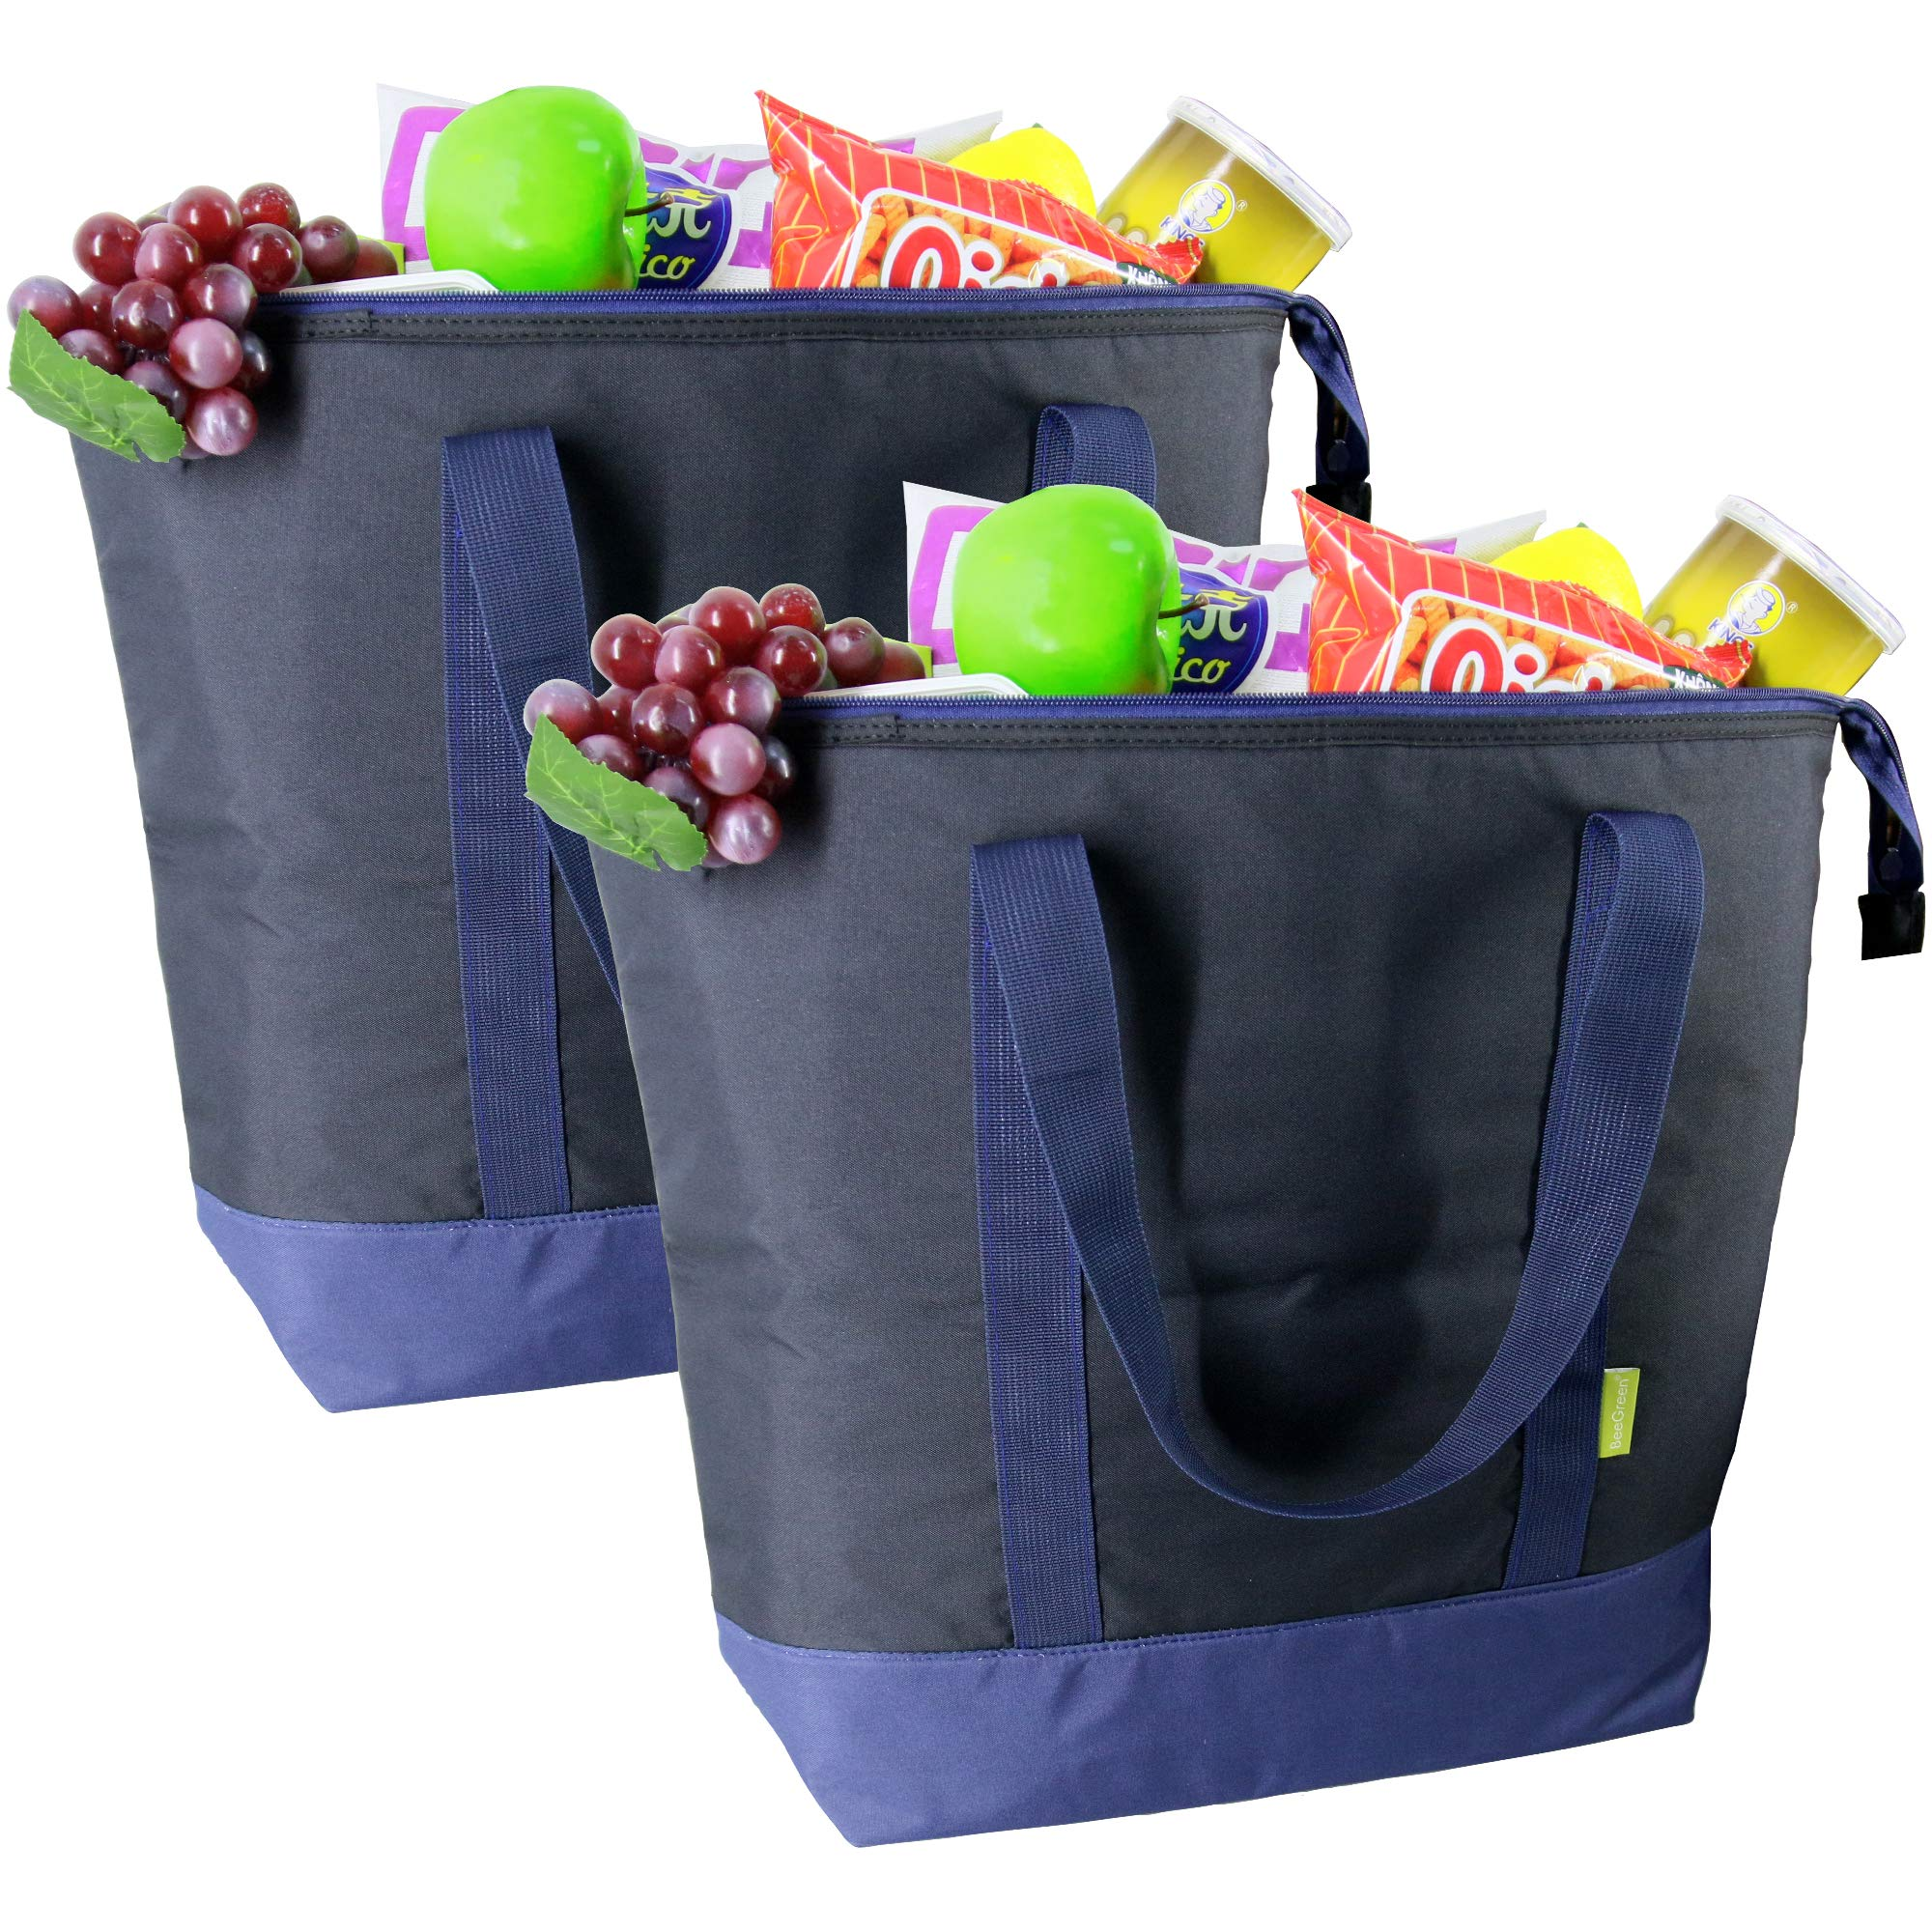 Cooler Tote Bags Insulated Grocery ChillOut Thermal Bags Large 50LBS Shopping for Groceries Reusable Freezer Bag with Zippered Top for Hot and Cold Food Transport 2 Pack Black by BeeGreen